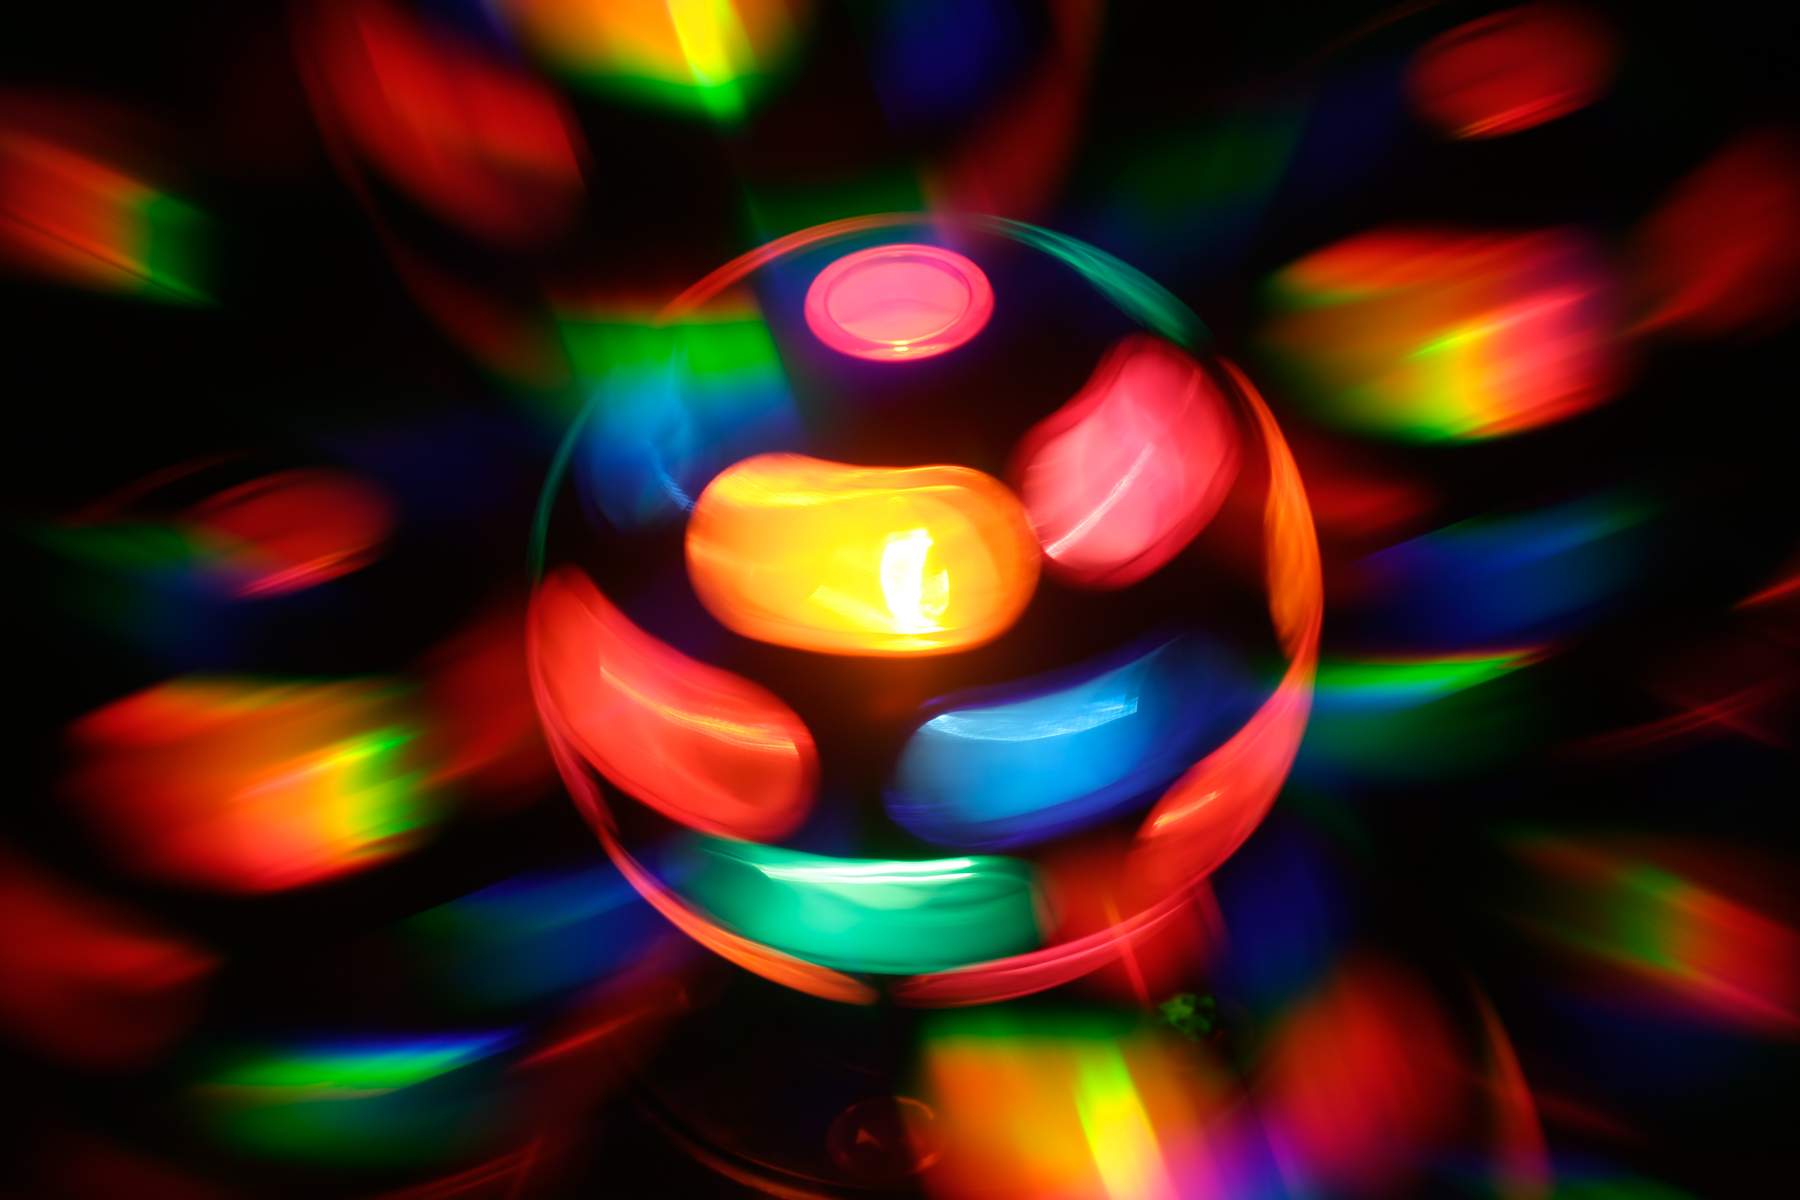 Spinning disco lamp abstract photo